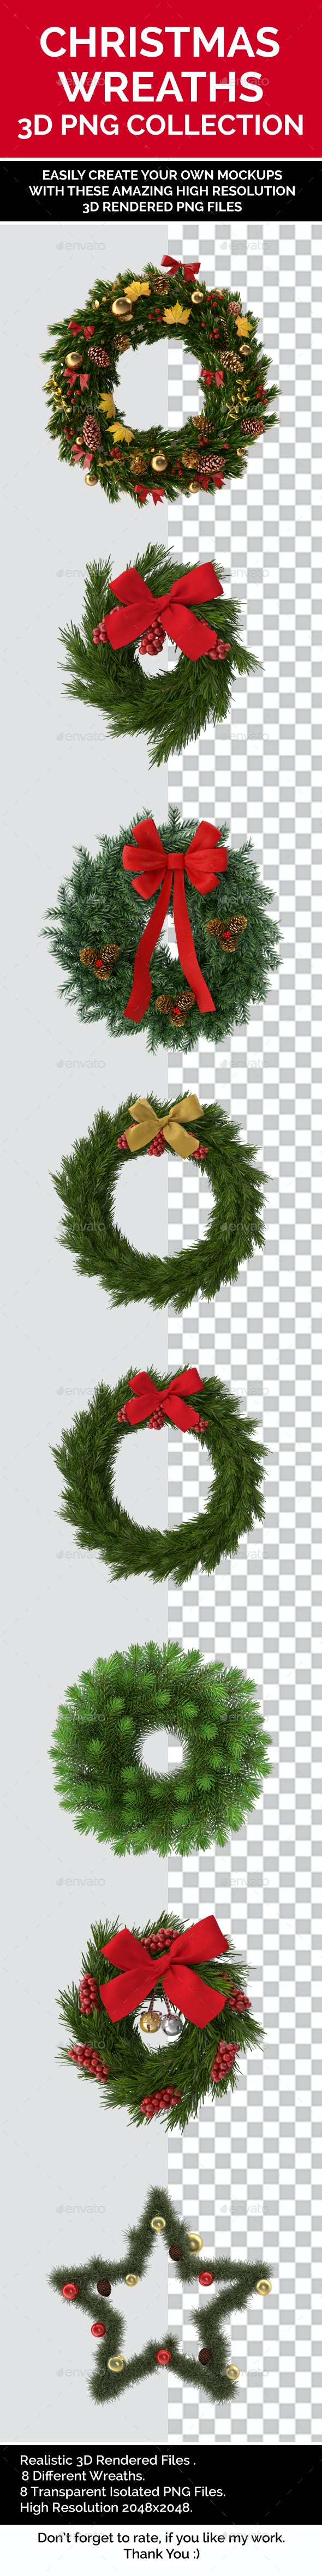 3D Rendered Christmas Wreath Collections Isolated PNG Set - Objects 3D Renders